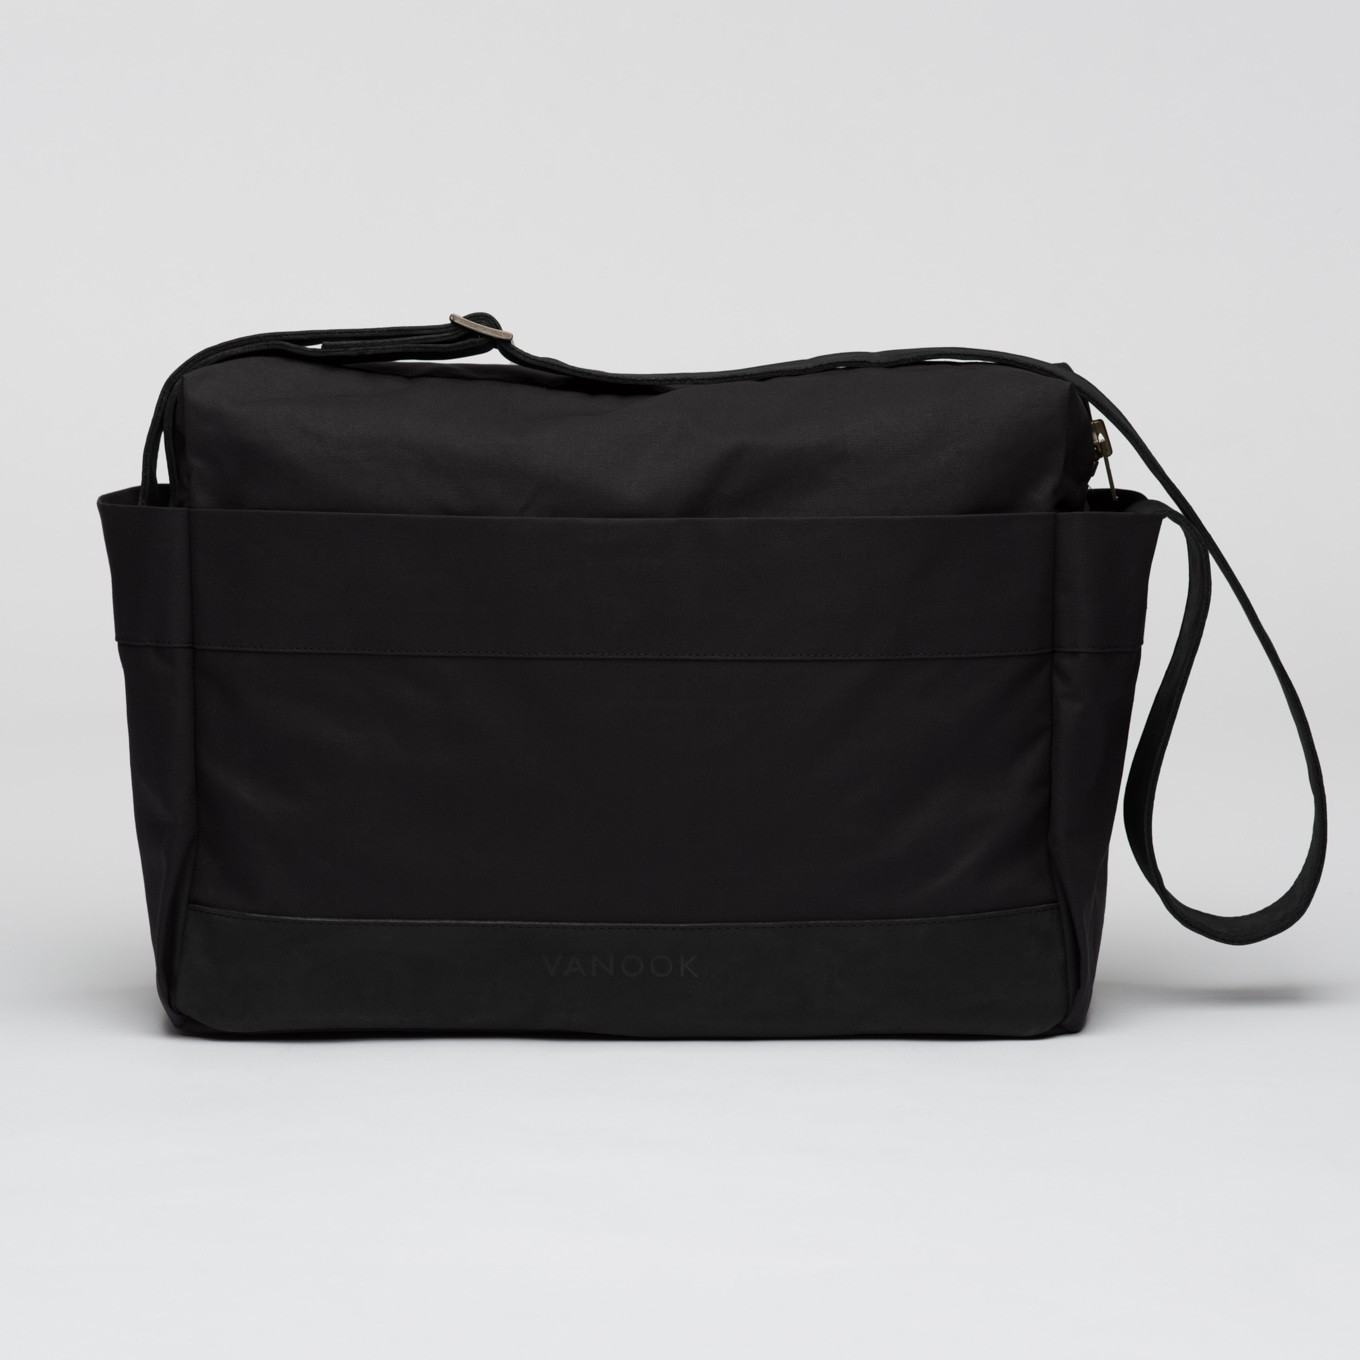 109_Messenger Bag-integrated Laptop Case-Coated Cotton-Leather